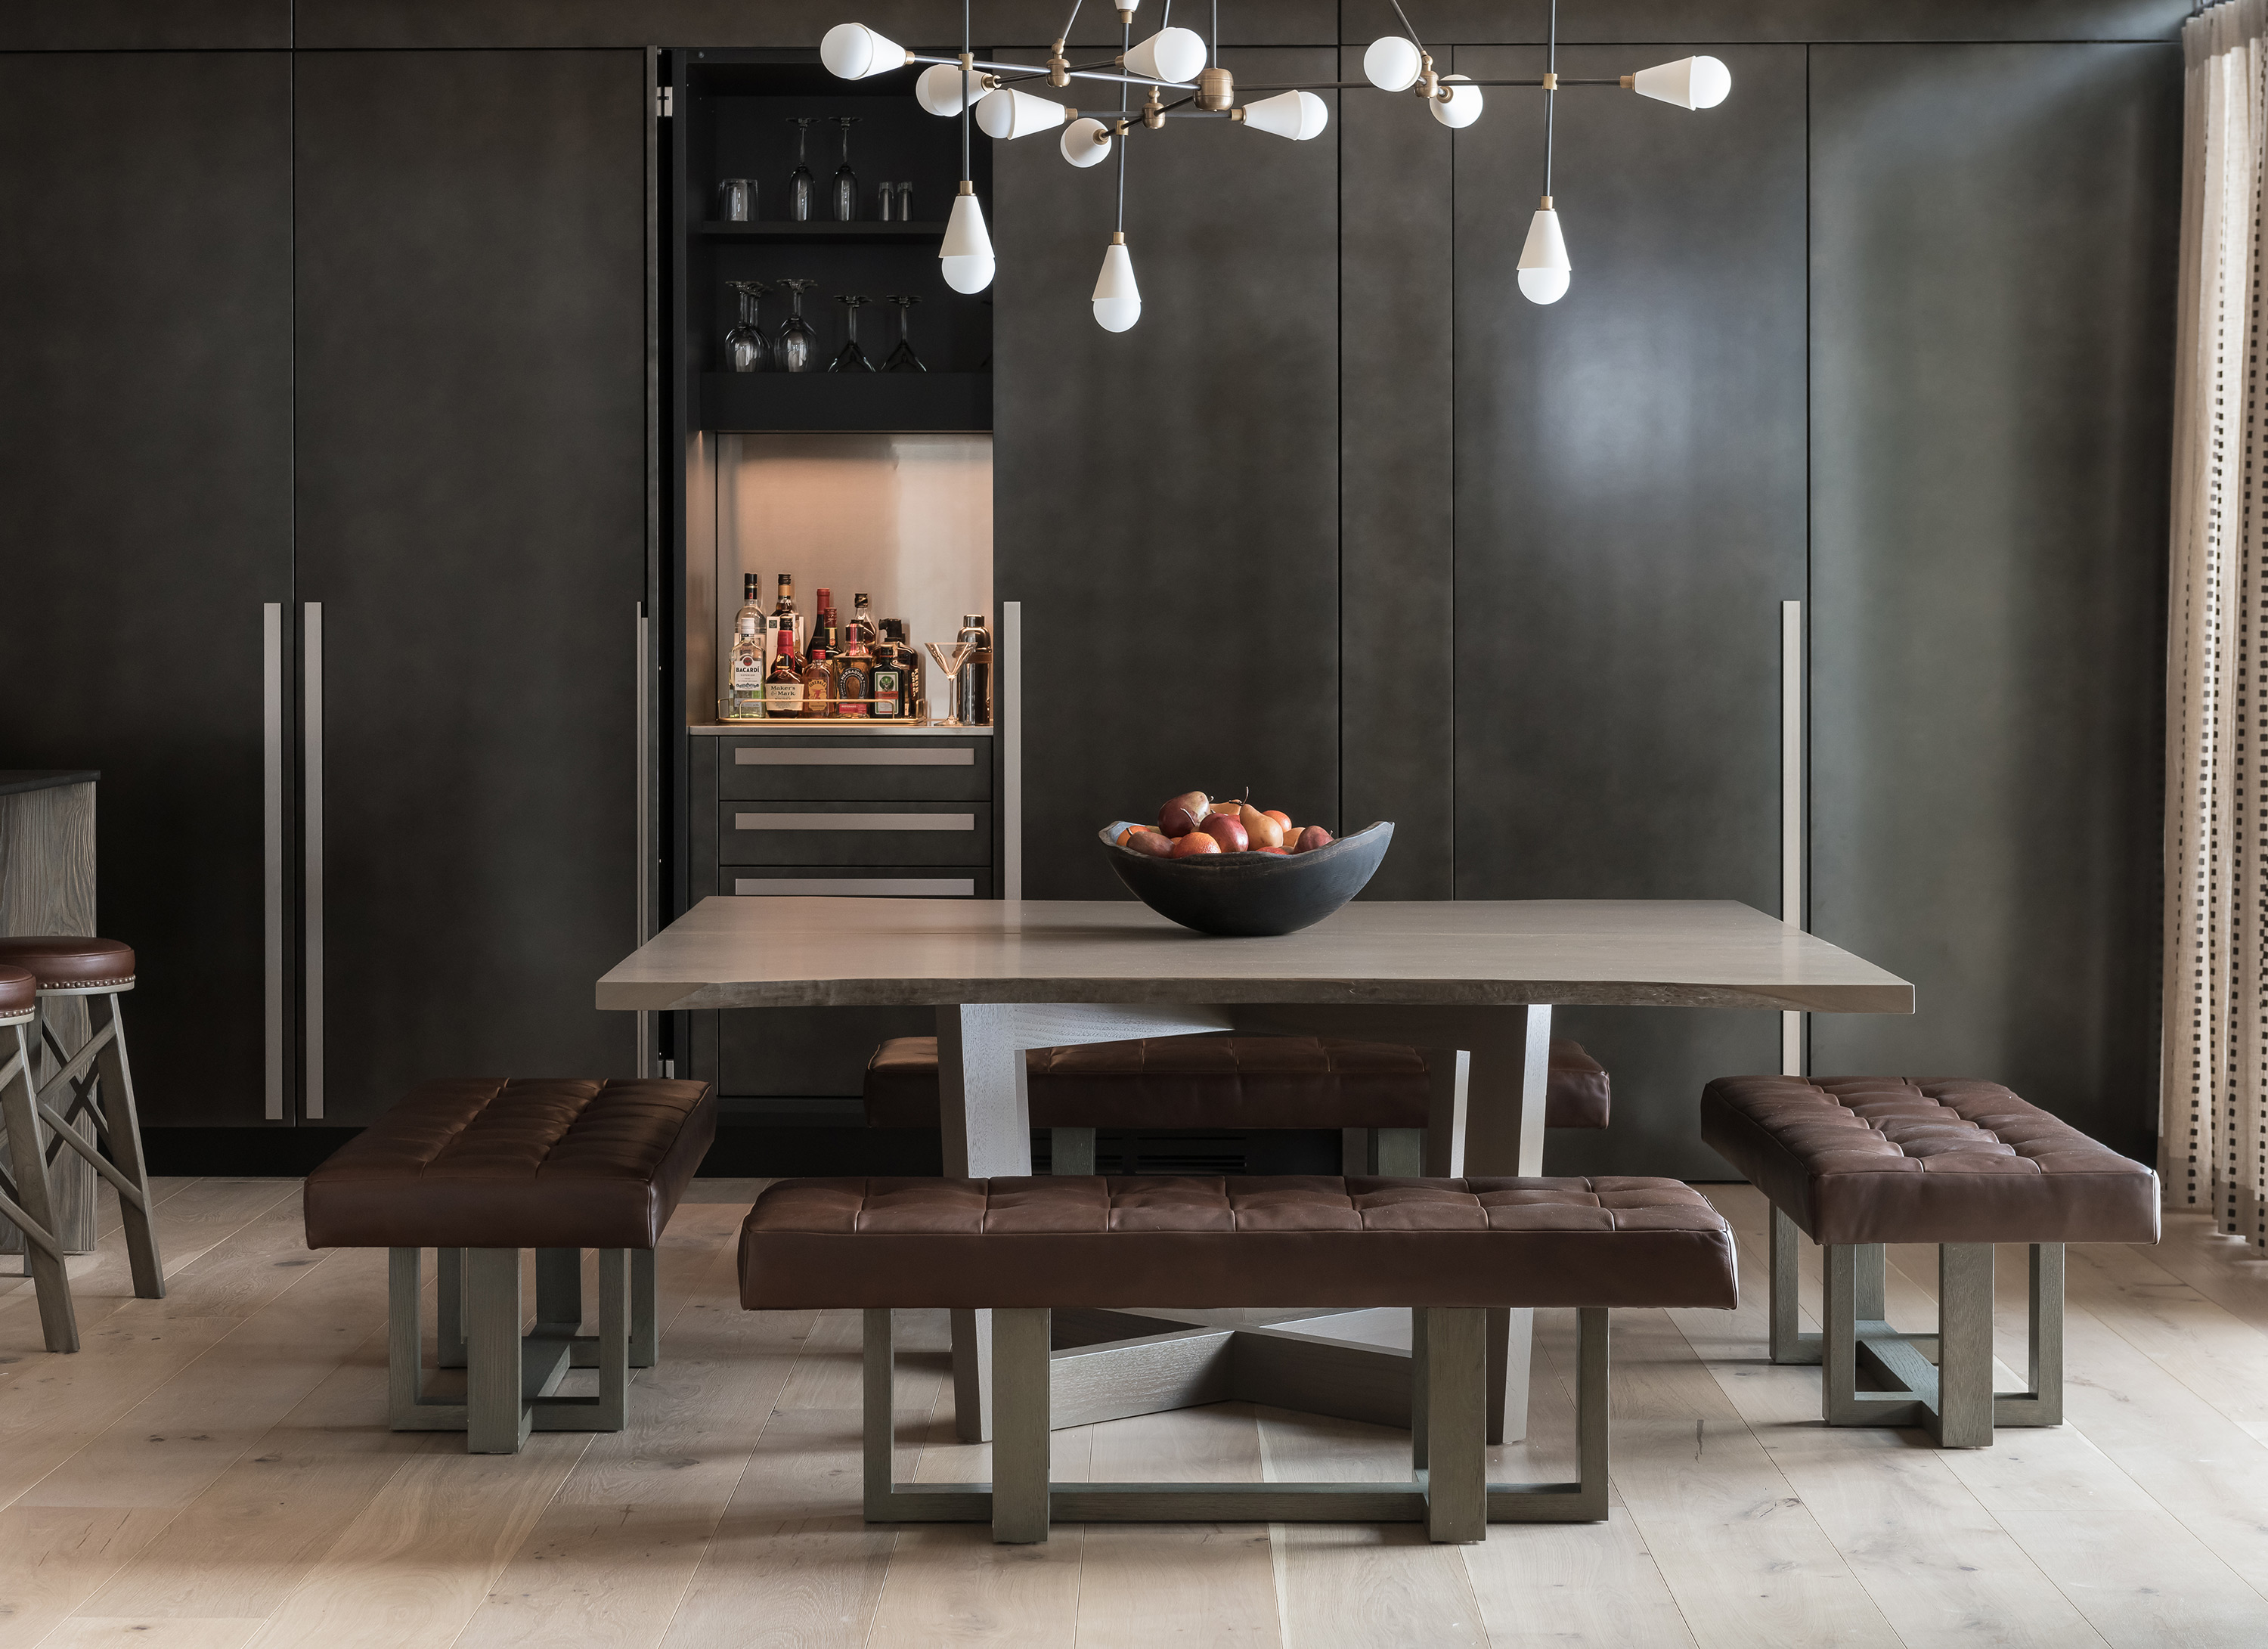 Valles Suite - Close-up of Dining Table